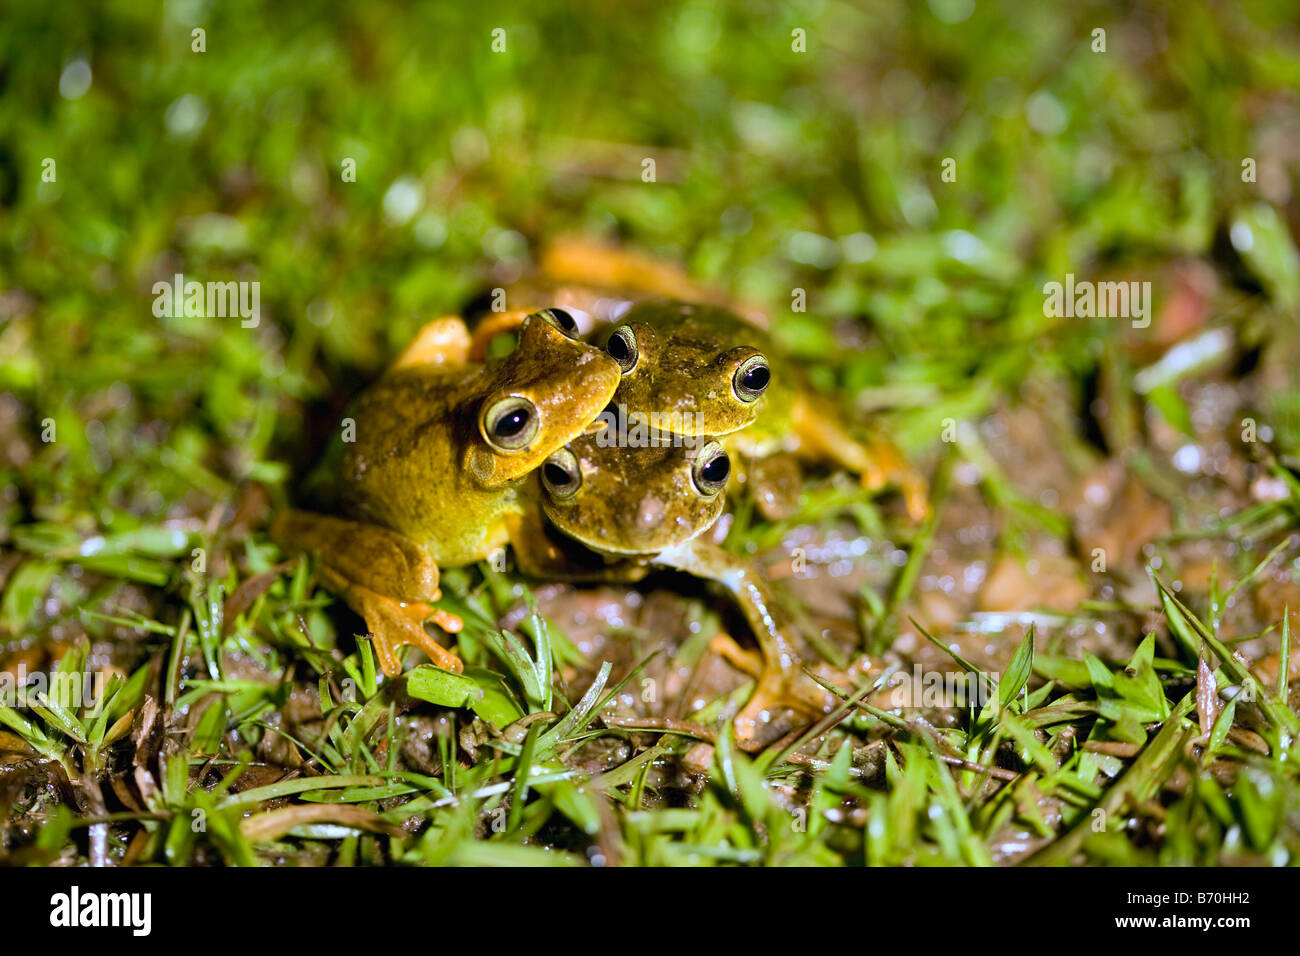 Suriname, Brownsweg, Brownsberg National Park. Frog. Family: Eleutherodactylus. Just discovered species. - Stock Image